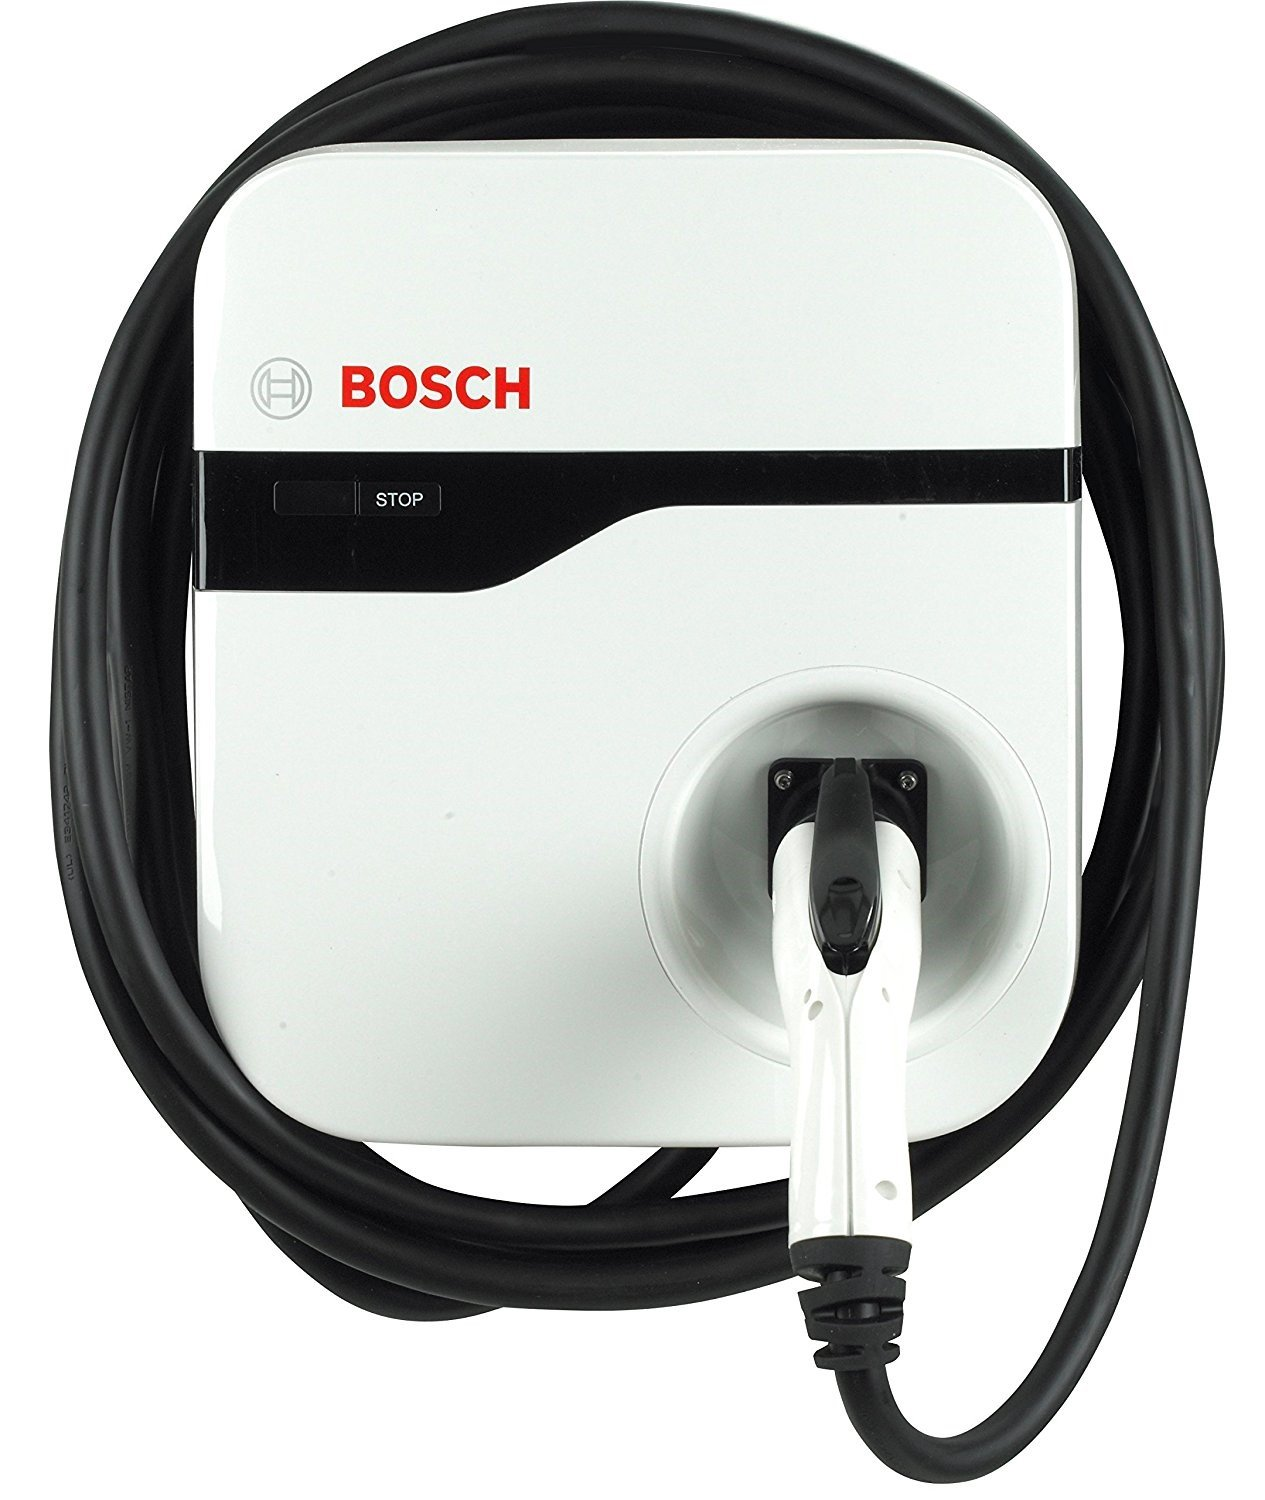 Bosch EV210 12 ft Cable Charging Station